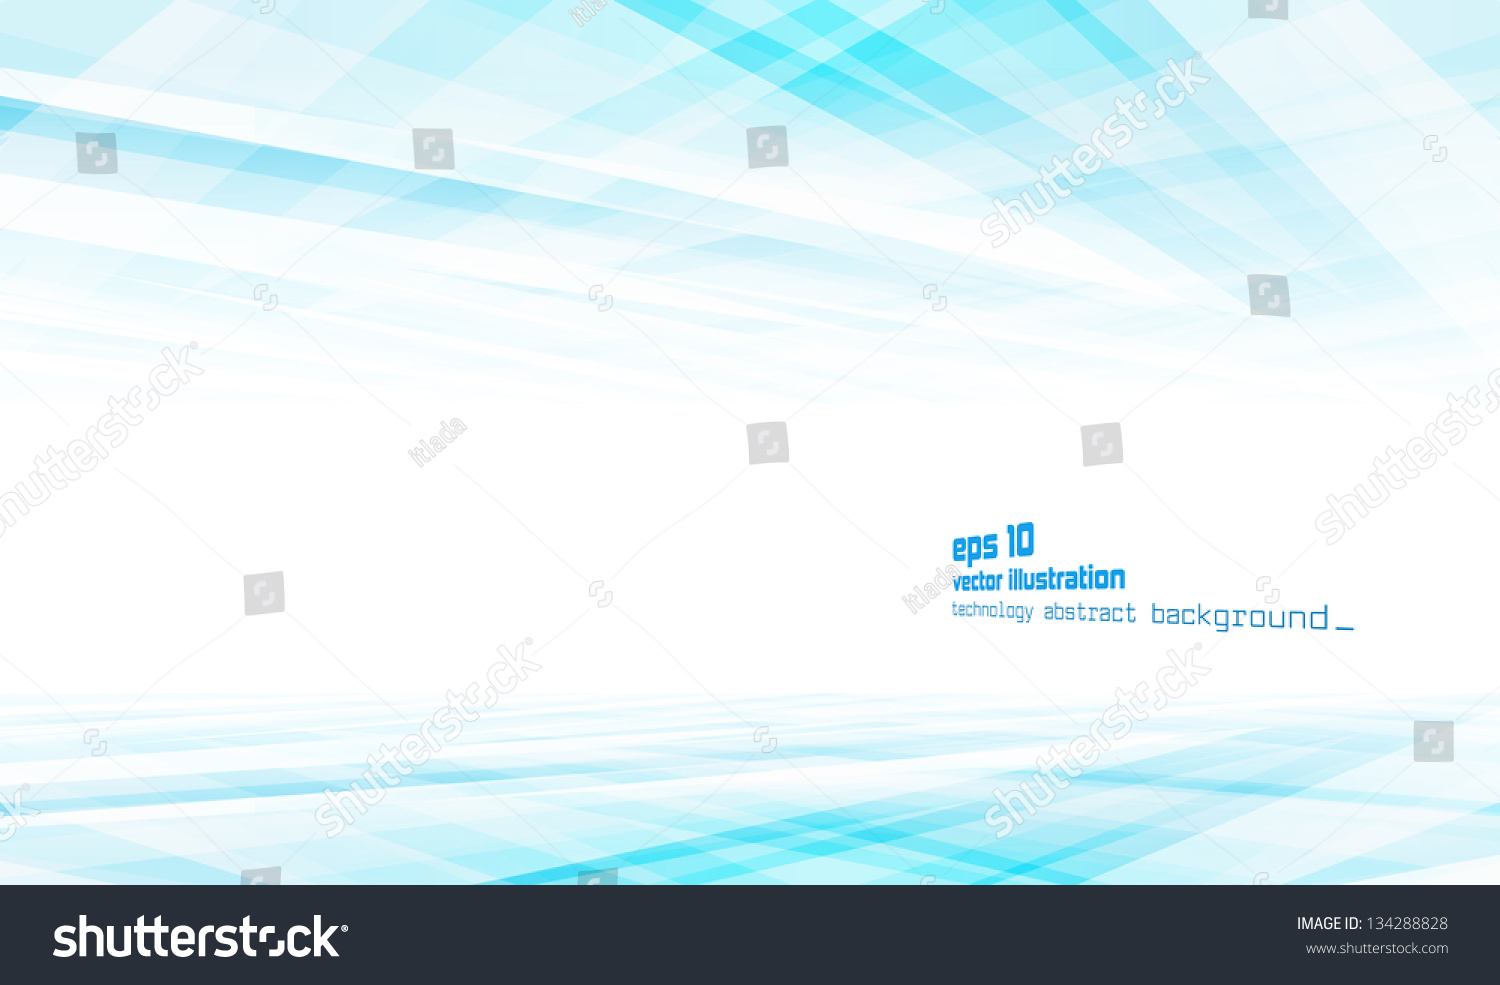 Background image transparency - Abstract Lowpoly Background Eps 10 Vector Illustration Used Opacity Mask And Transparency Layers Of